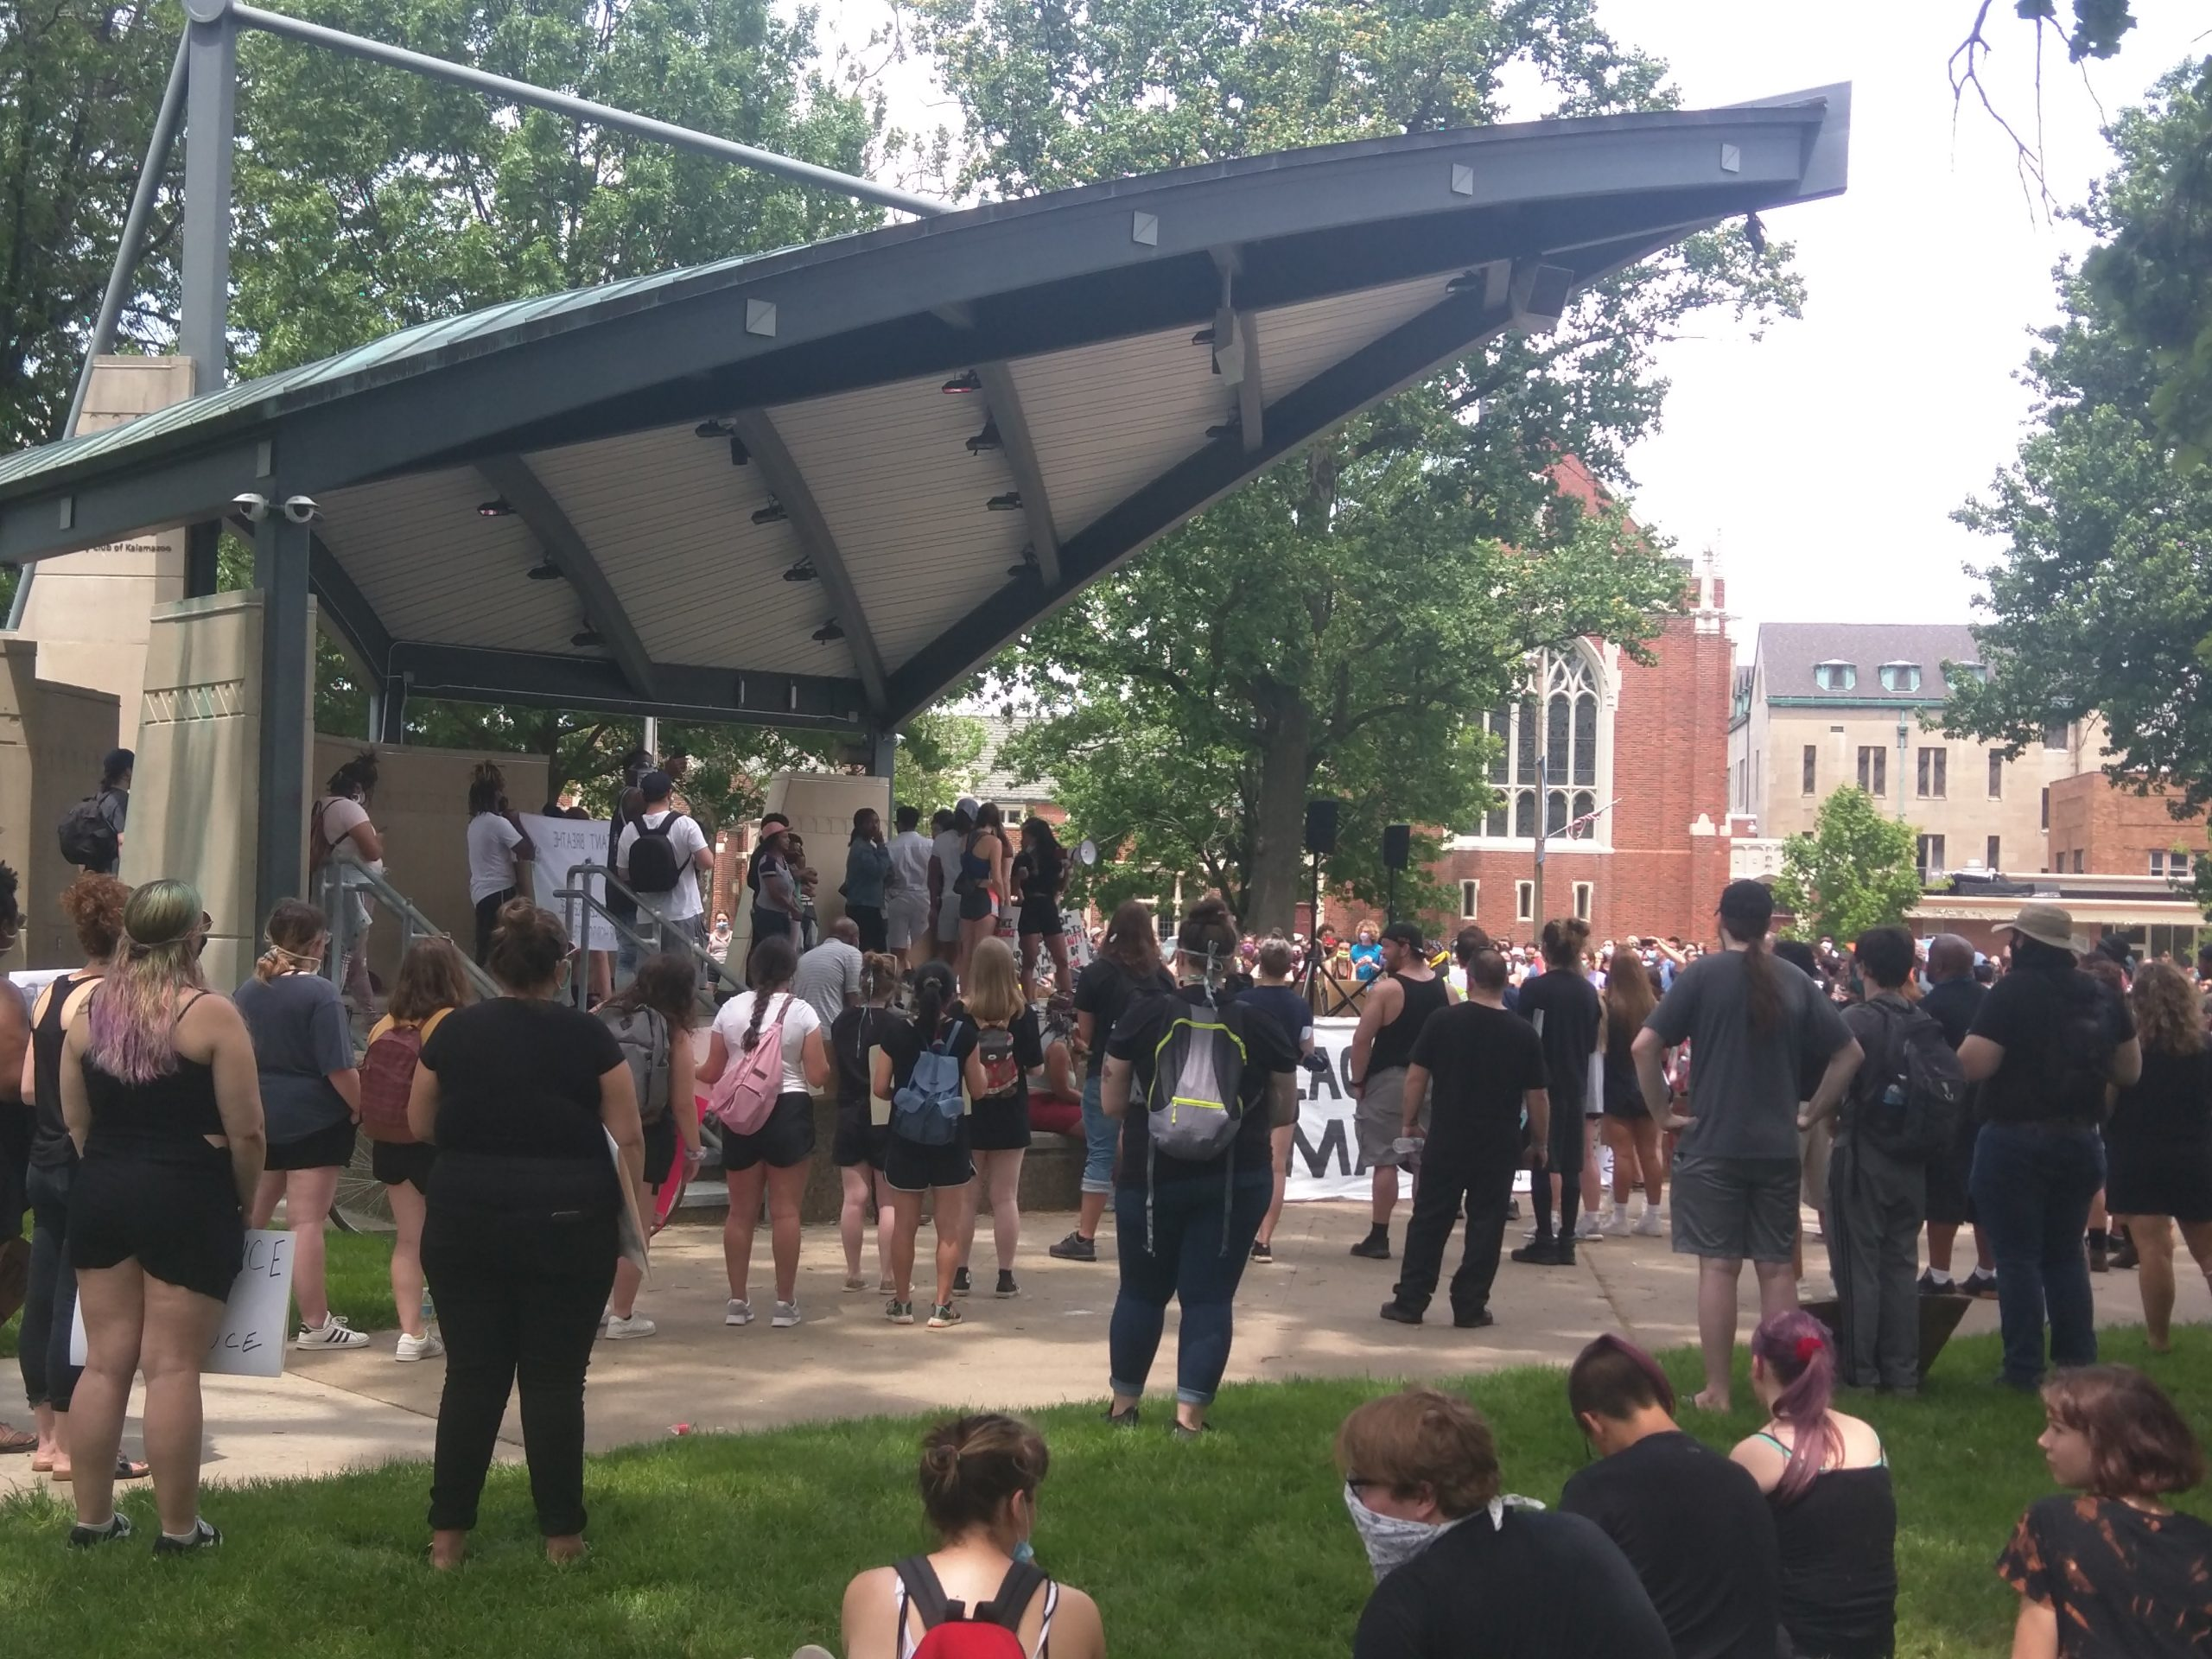 A crowd of people stands in front of an outdoor stage where people are speaking